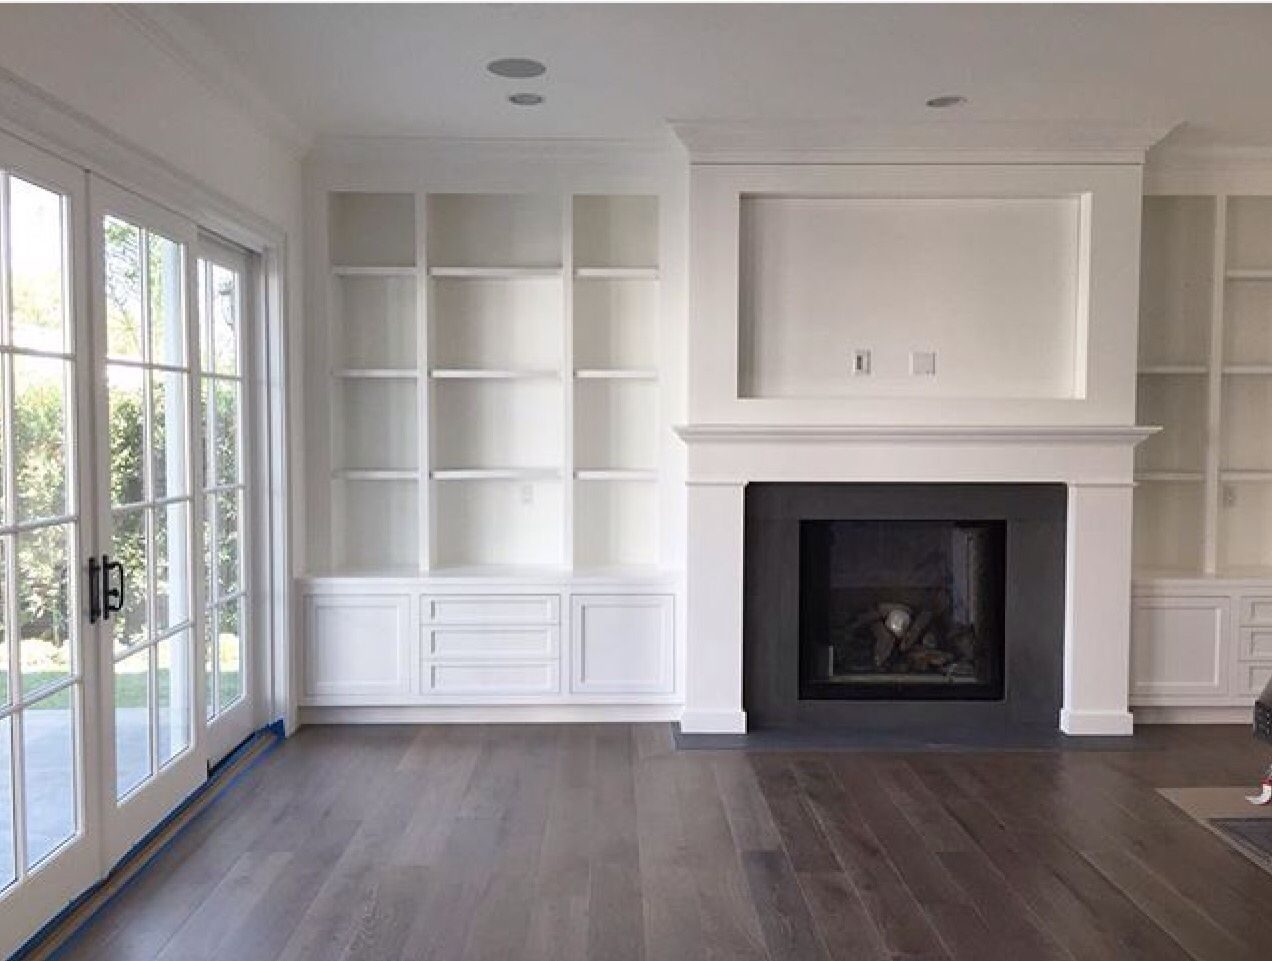 Built In Shelving Around Fireplace, Cut